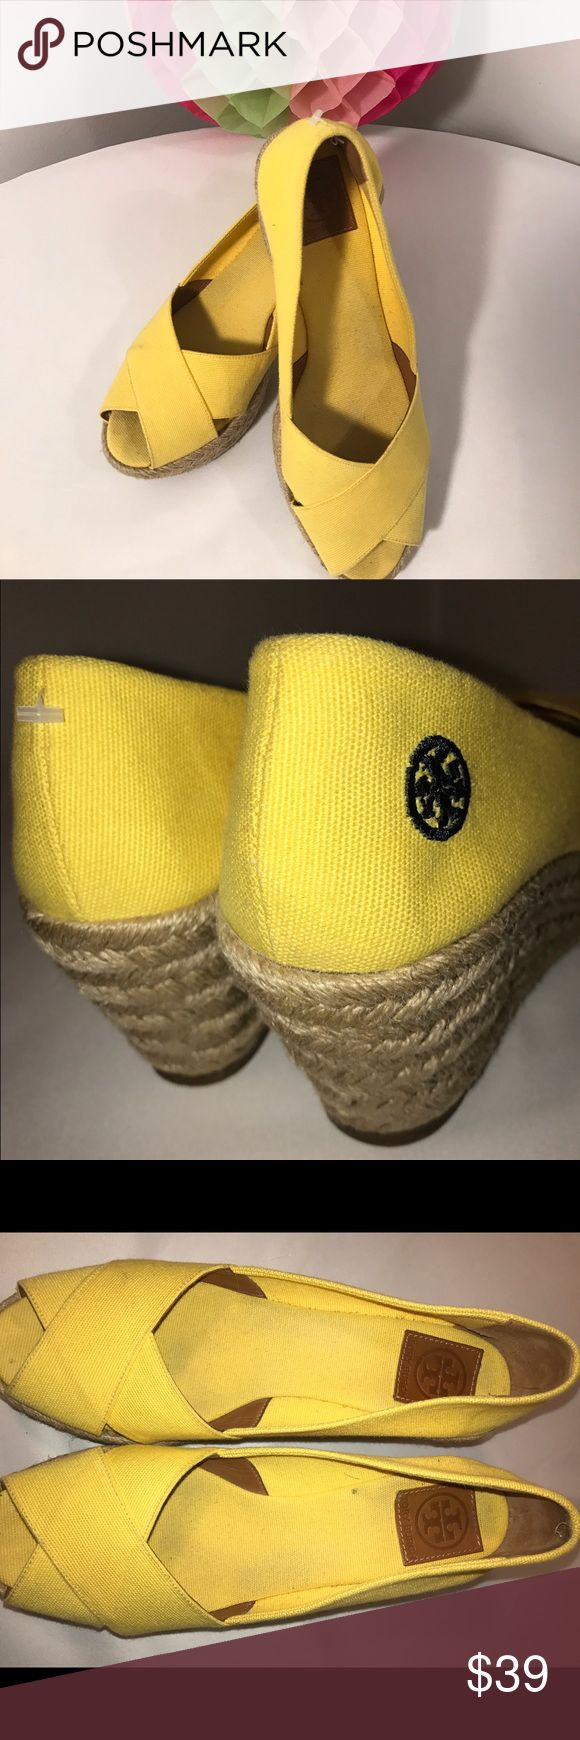 Tory Burch yellow wedge sandals 10 Never goes out of style canary yellow TORY BURCH wedge sandals size 10 very good Condition Tory Burch Shoes Wedges